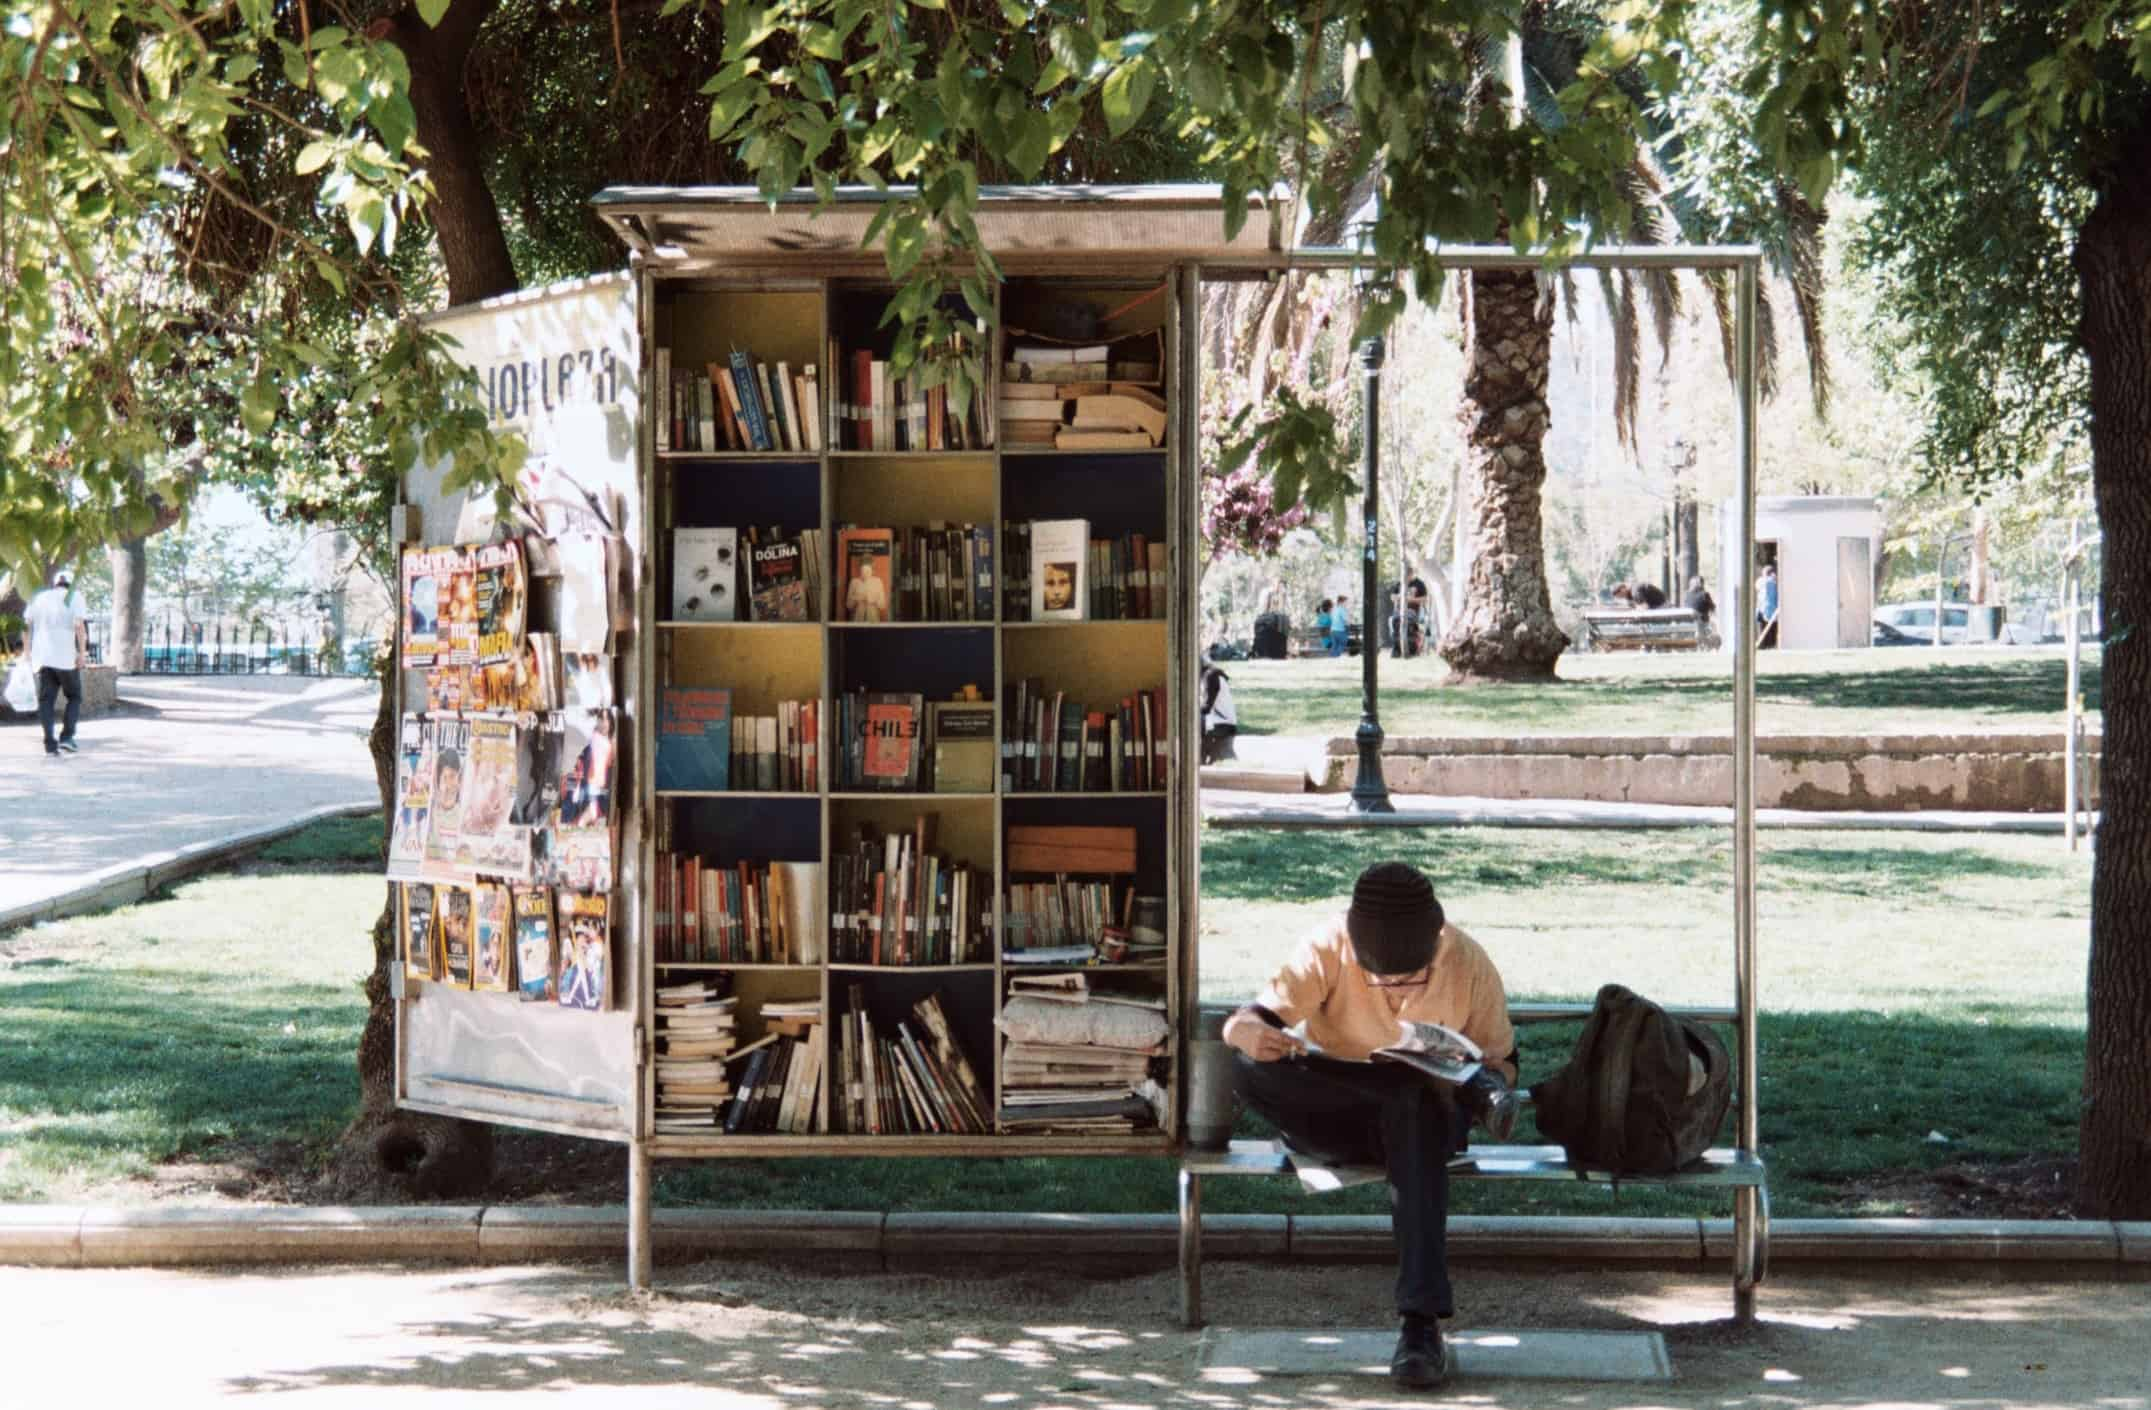 Giving people access to books, information, and other resources boosts economic vitality.